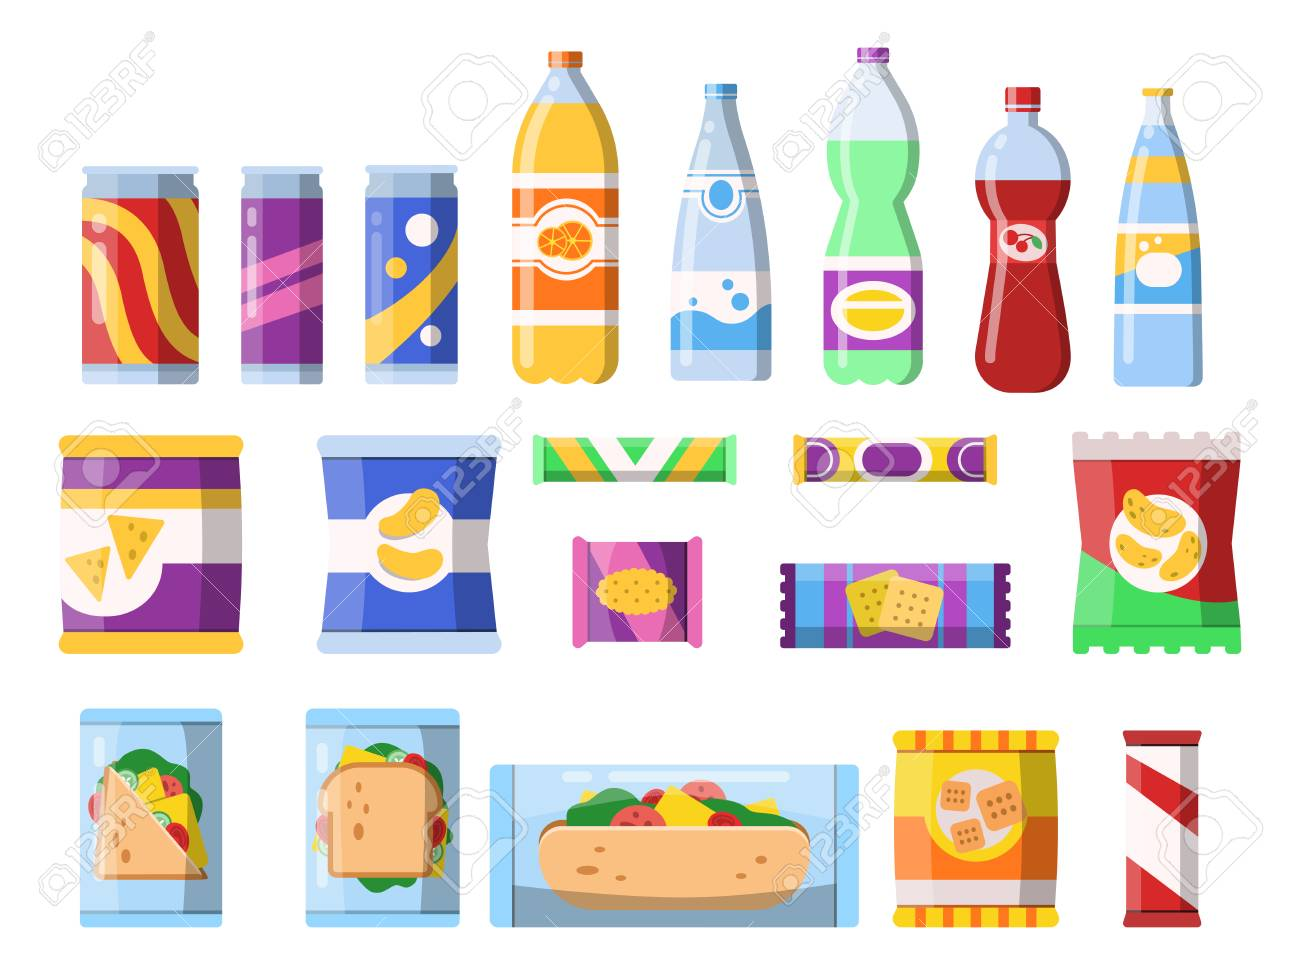 Snacks and drinks. Merchandising products fast food plastic containers water soda biscuits crisps bar chocolate vector flat pictures. Illustration of food sandwich, bottle beverage and snack - 127633930